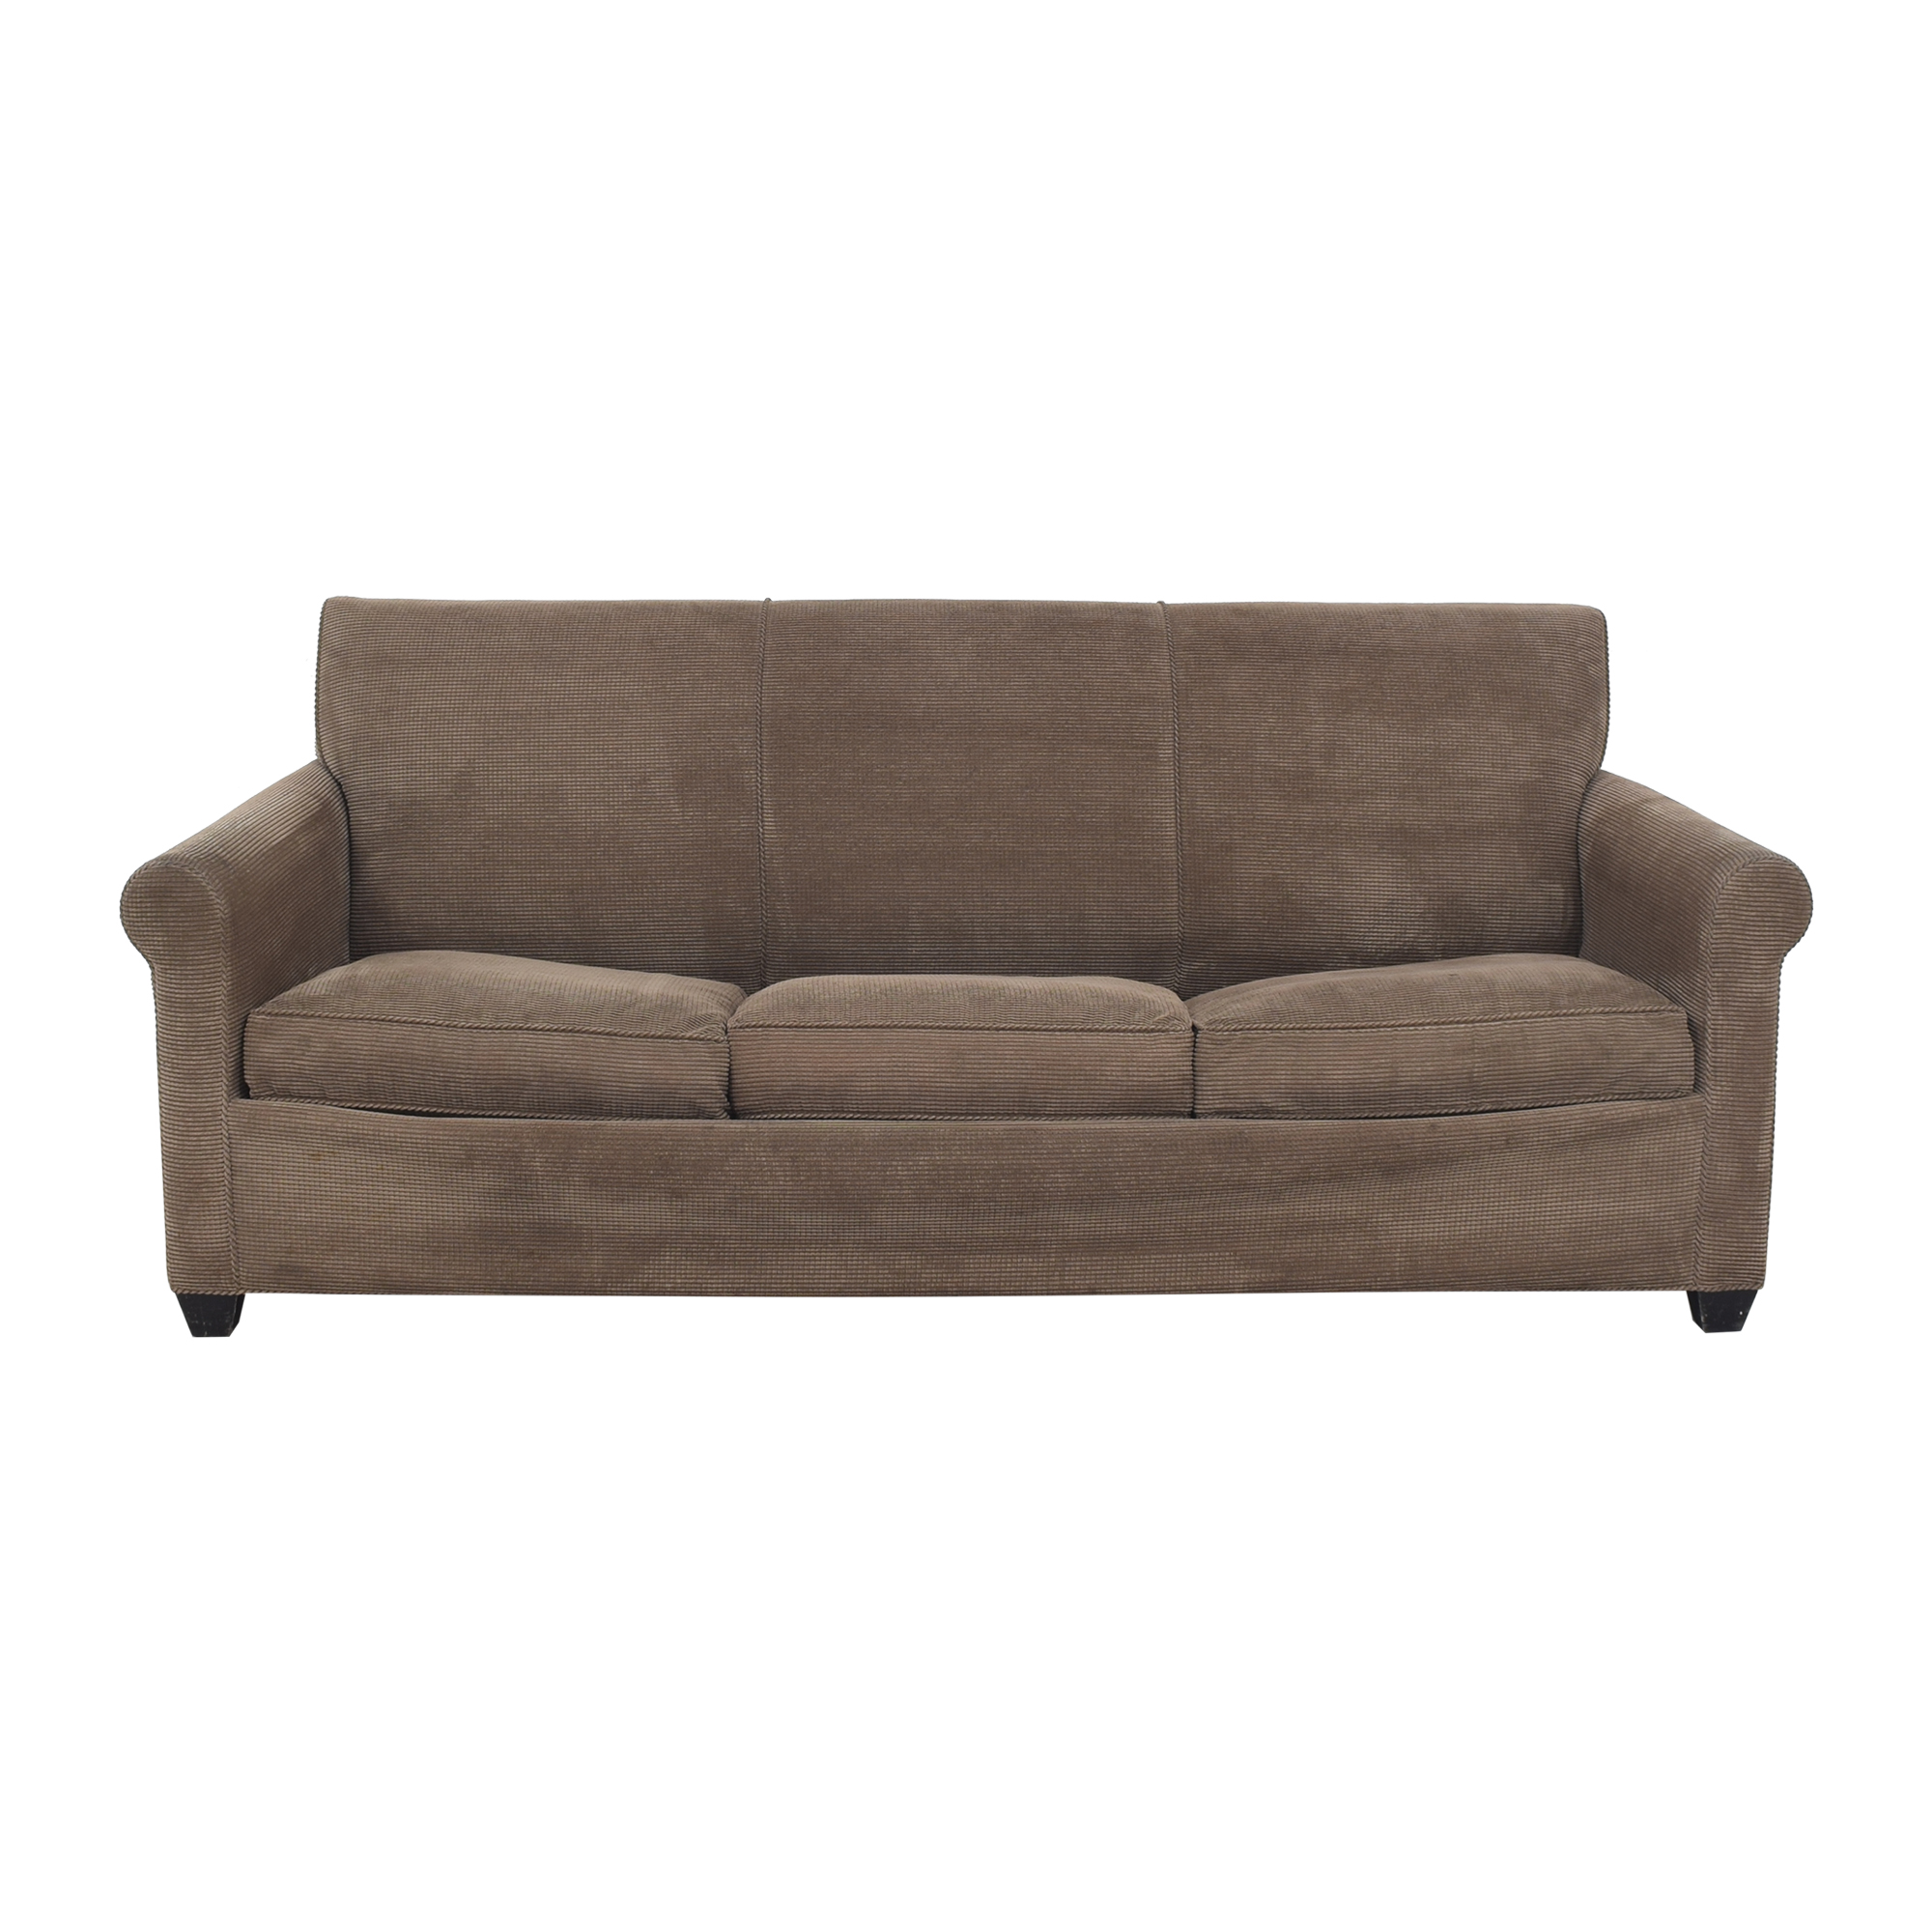 shop Crate & Barrel Sleeper Sofa Crate & Barrel Sofas